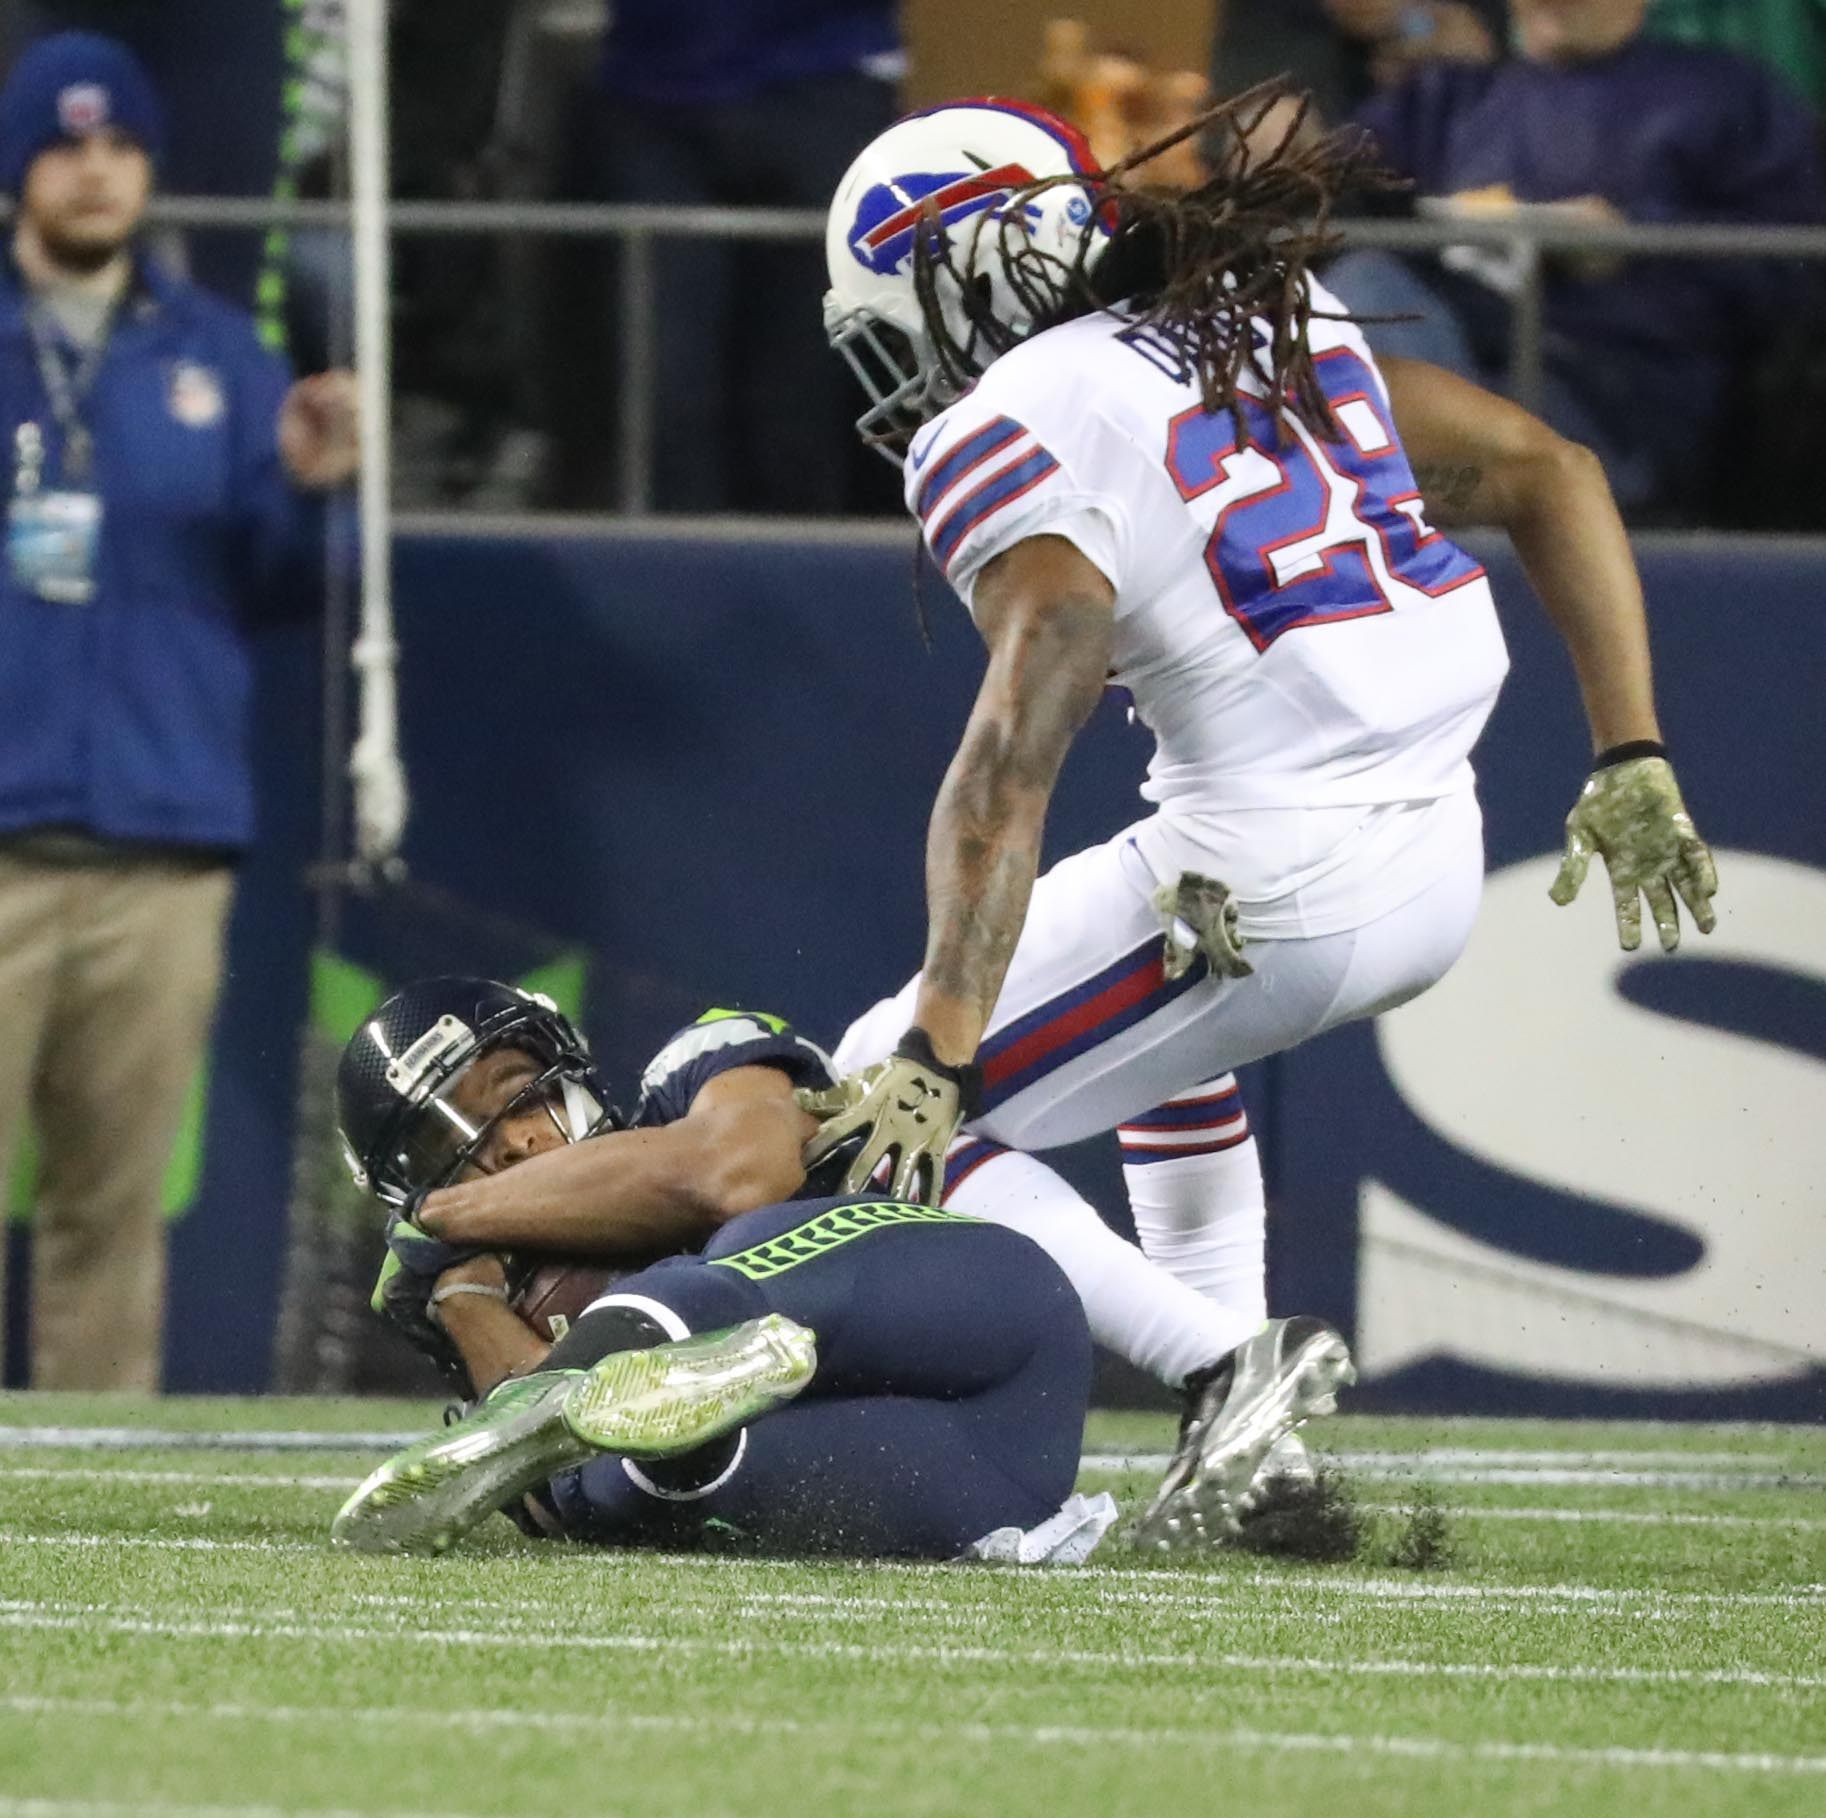 After a rough game against Seattle, Bills cornerback Ronald Darby faces competition from Corey White for his starting job. (James P. McCoy/Buffalo News)